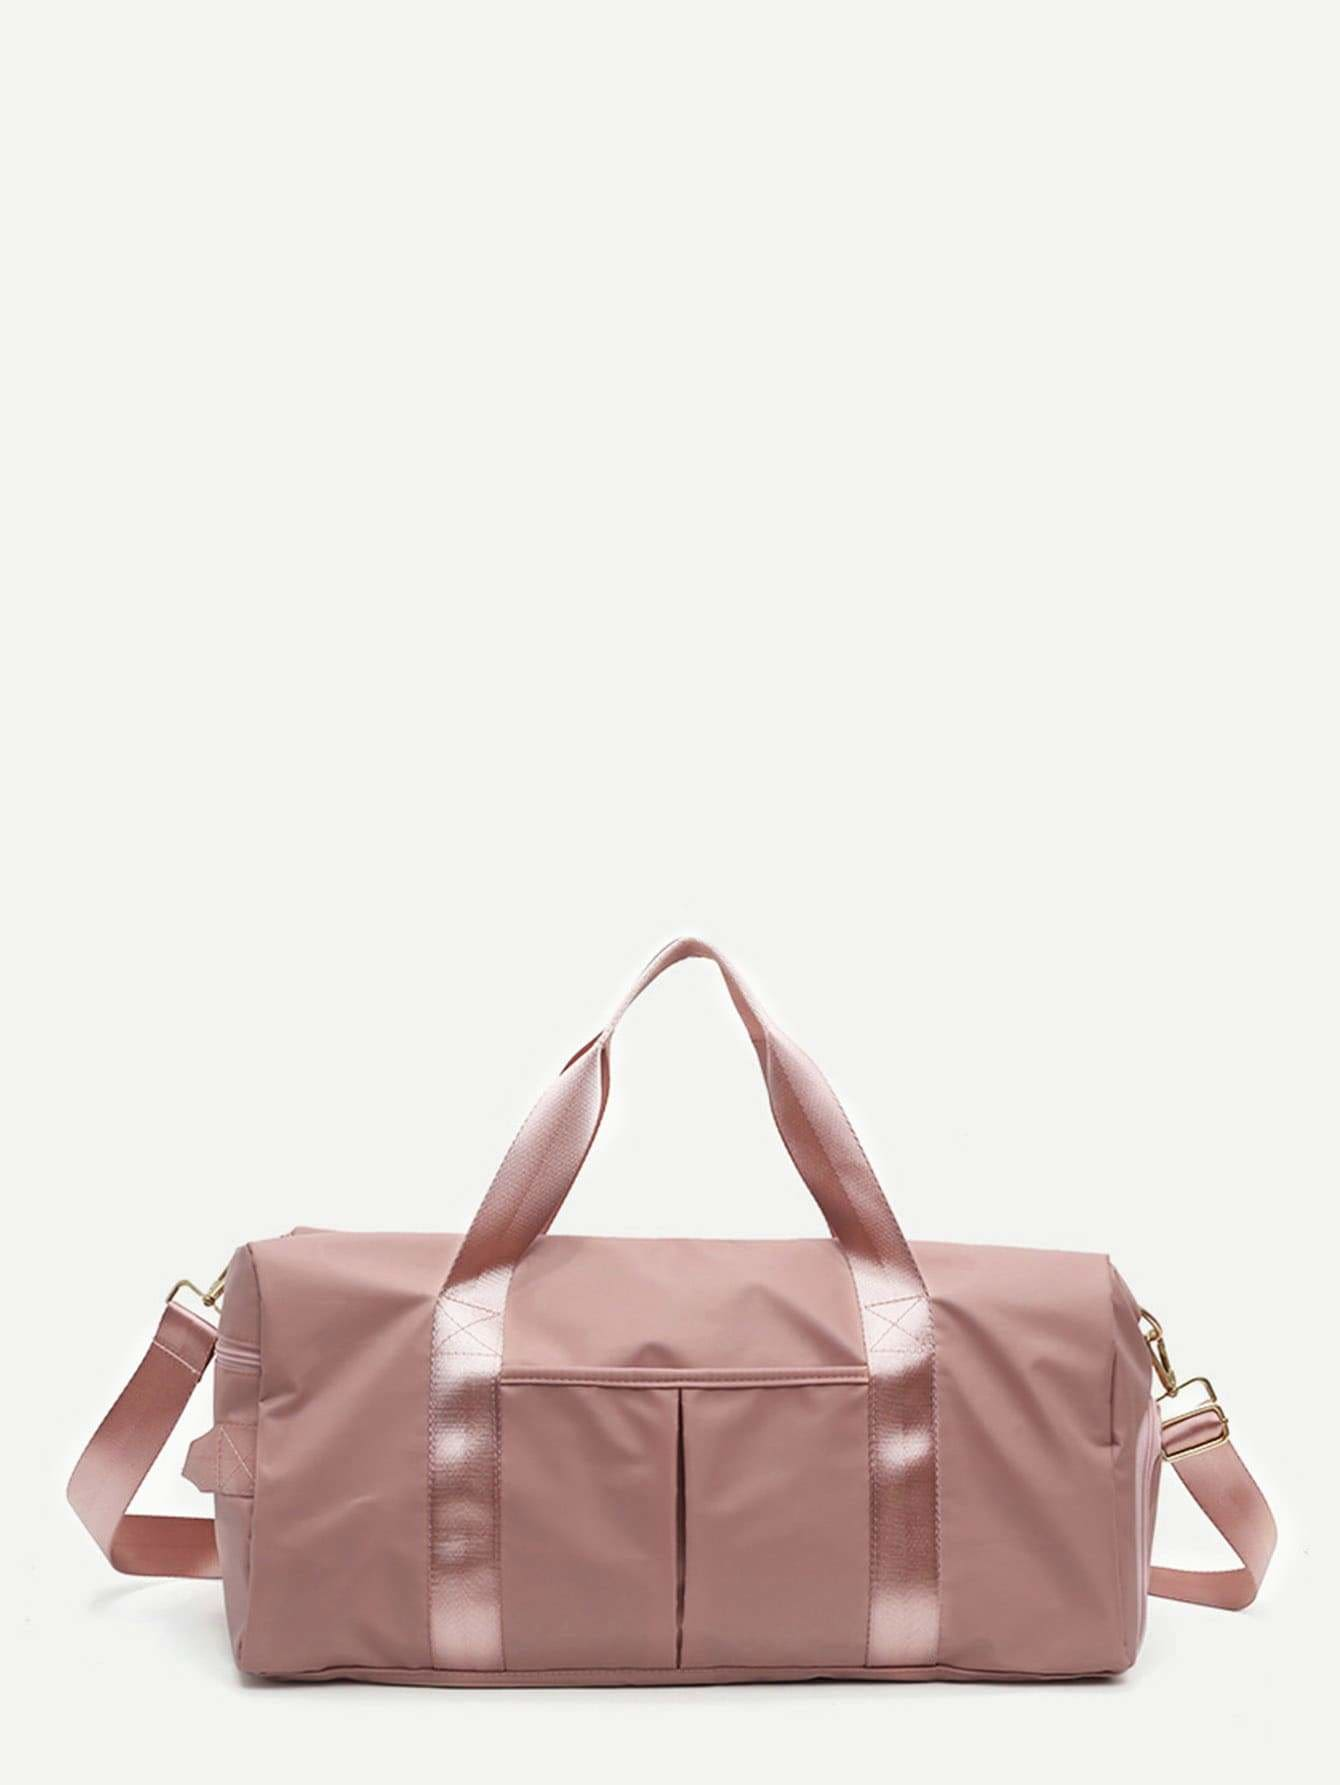 Solid Nylon Duffle Bag - Womens Bag